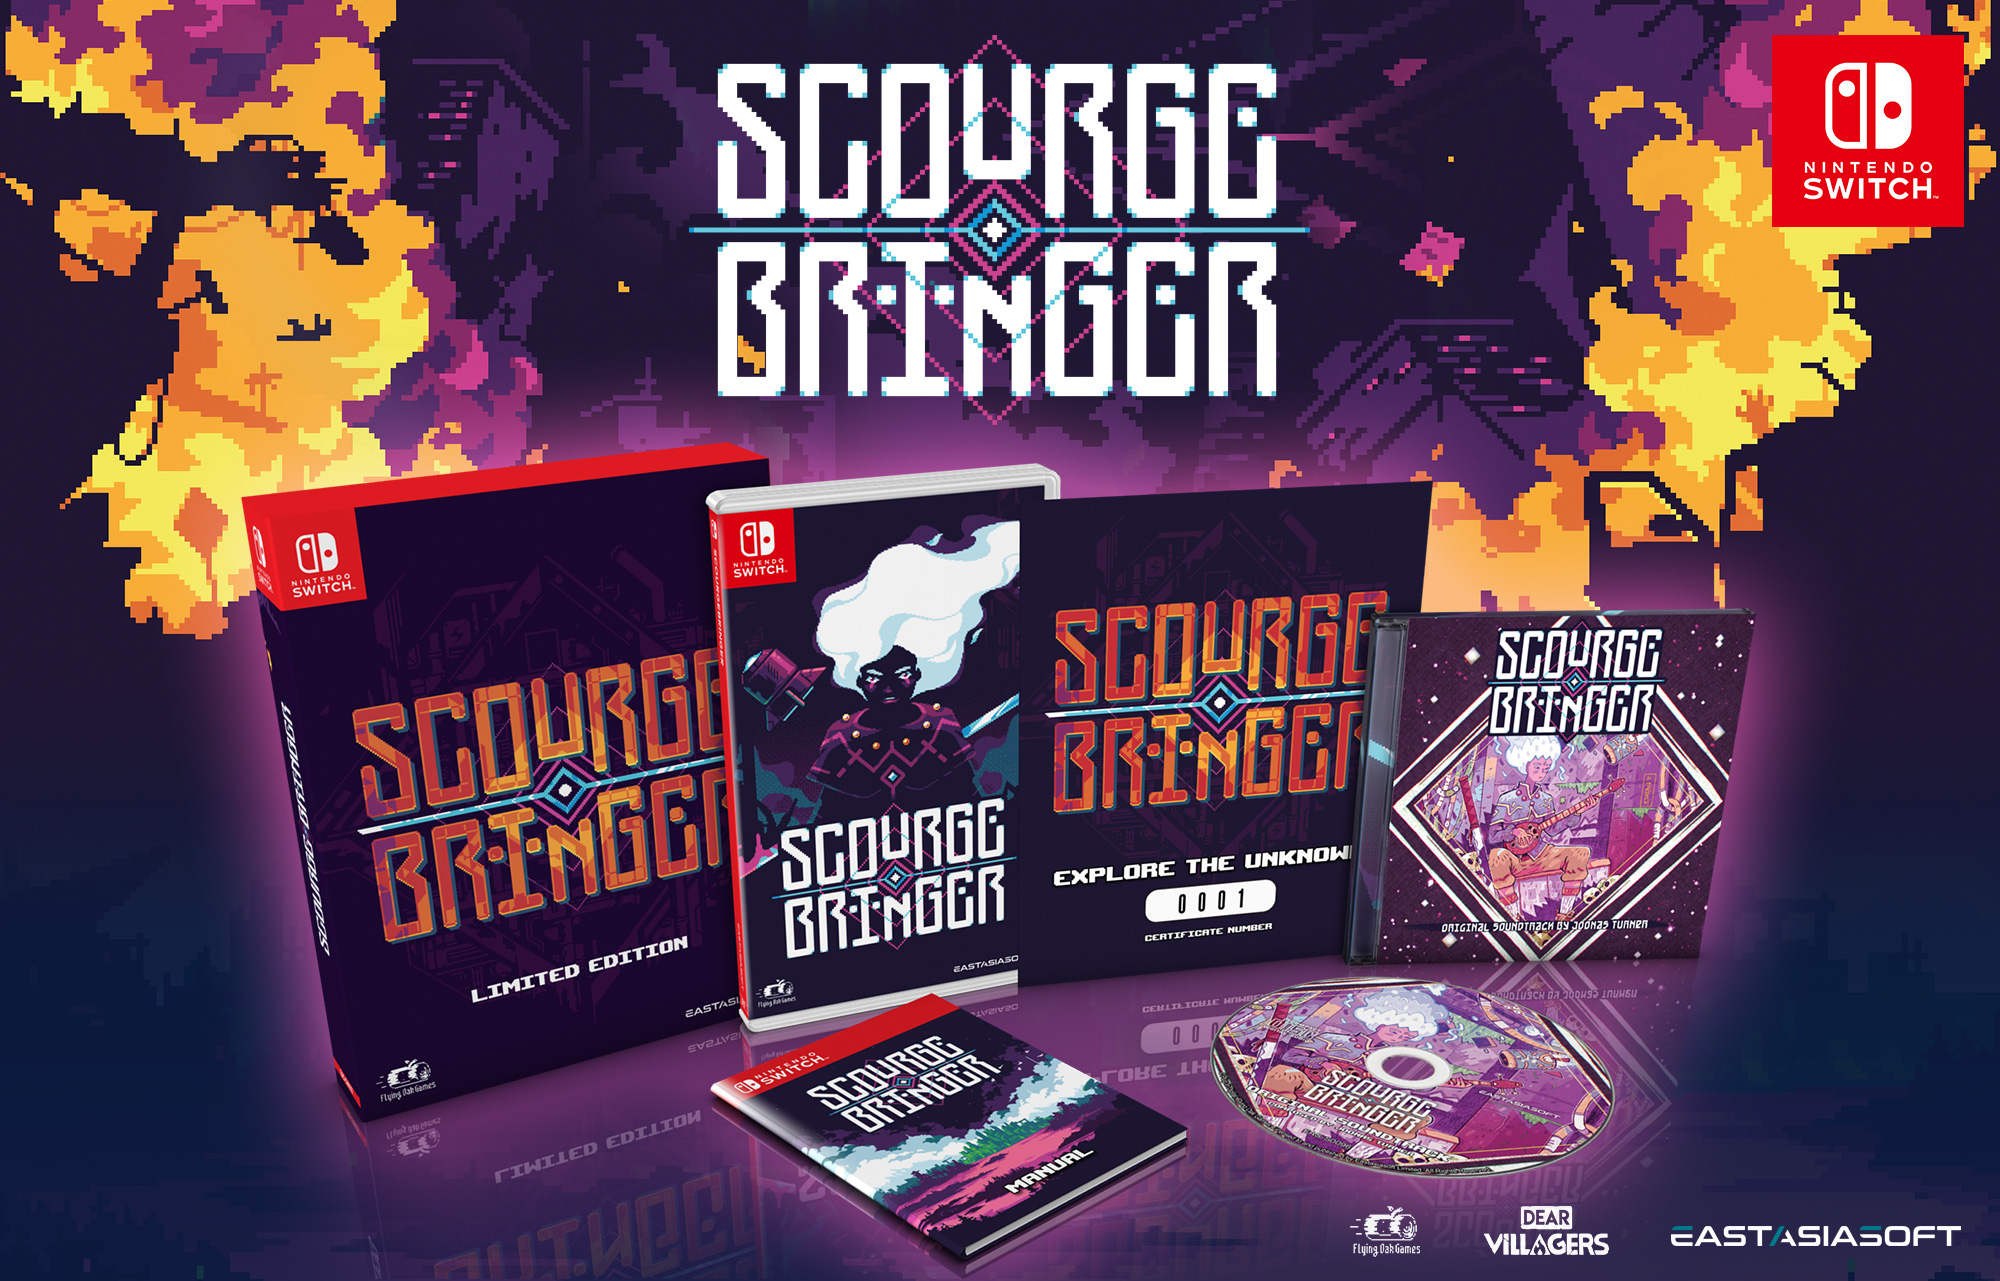 ScourgeBringer Limited Edition